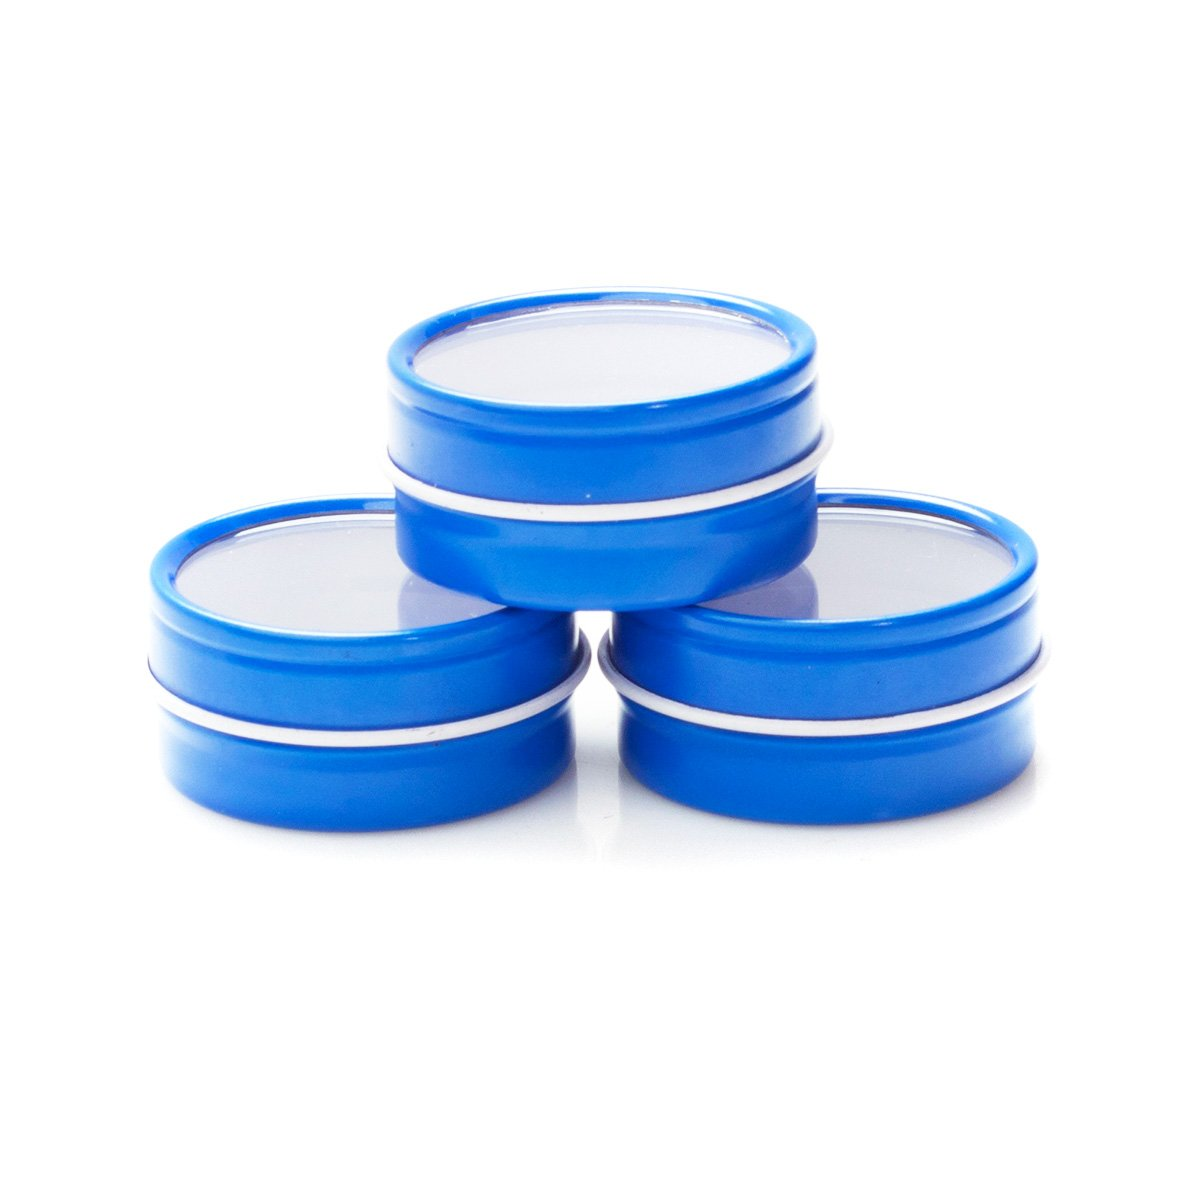 Mimi Pack 6 oz Shallow Round Clear Window Top Blue Metal Tins For Salves, Favors, Spices, Balms, Candles, Gifts 24 Pack